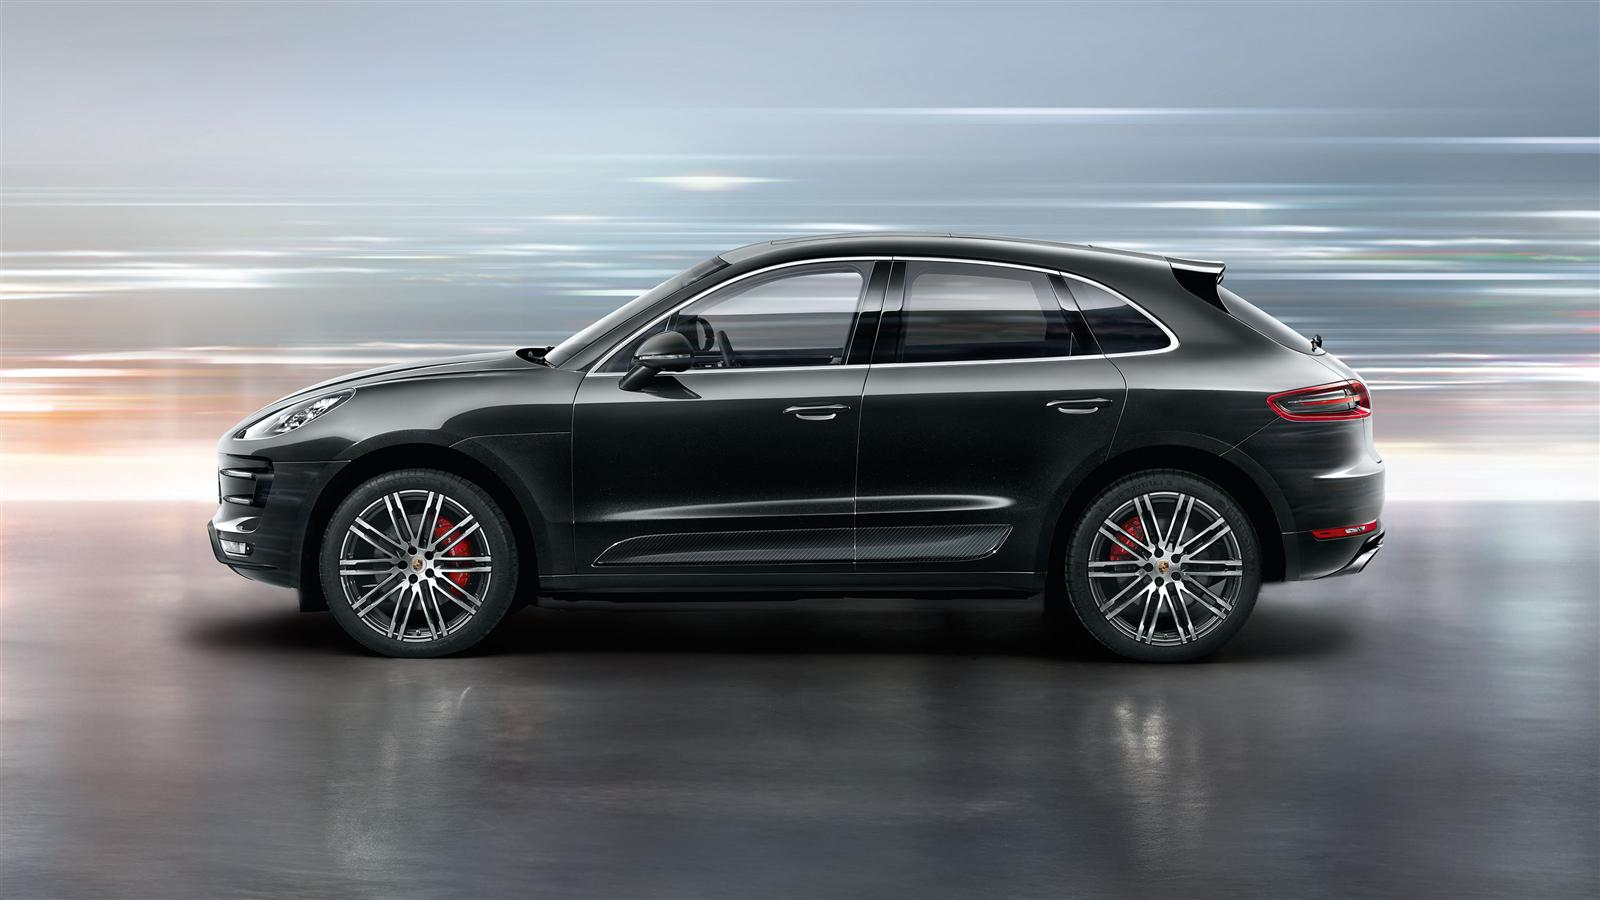 2017 Porsche Macan Turbo With Performance Package Boasts